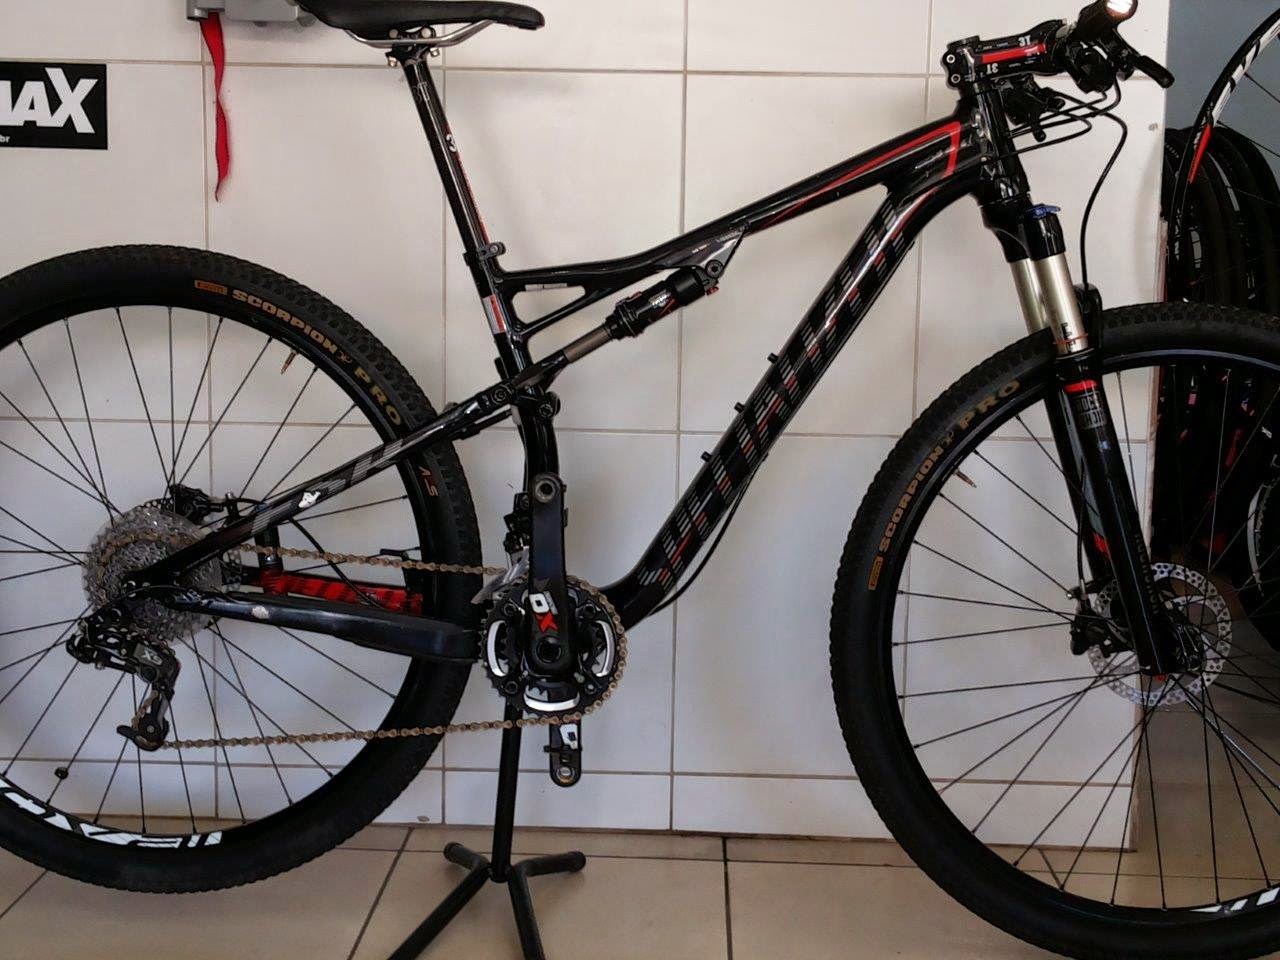 3a7ca41e11dd8 Mural de Aventuras  Classificados  Bike Epic Comp, black red, aro 29, semi  nova, modelo 2014.